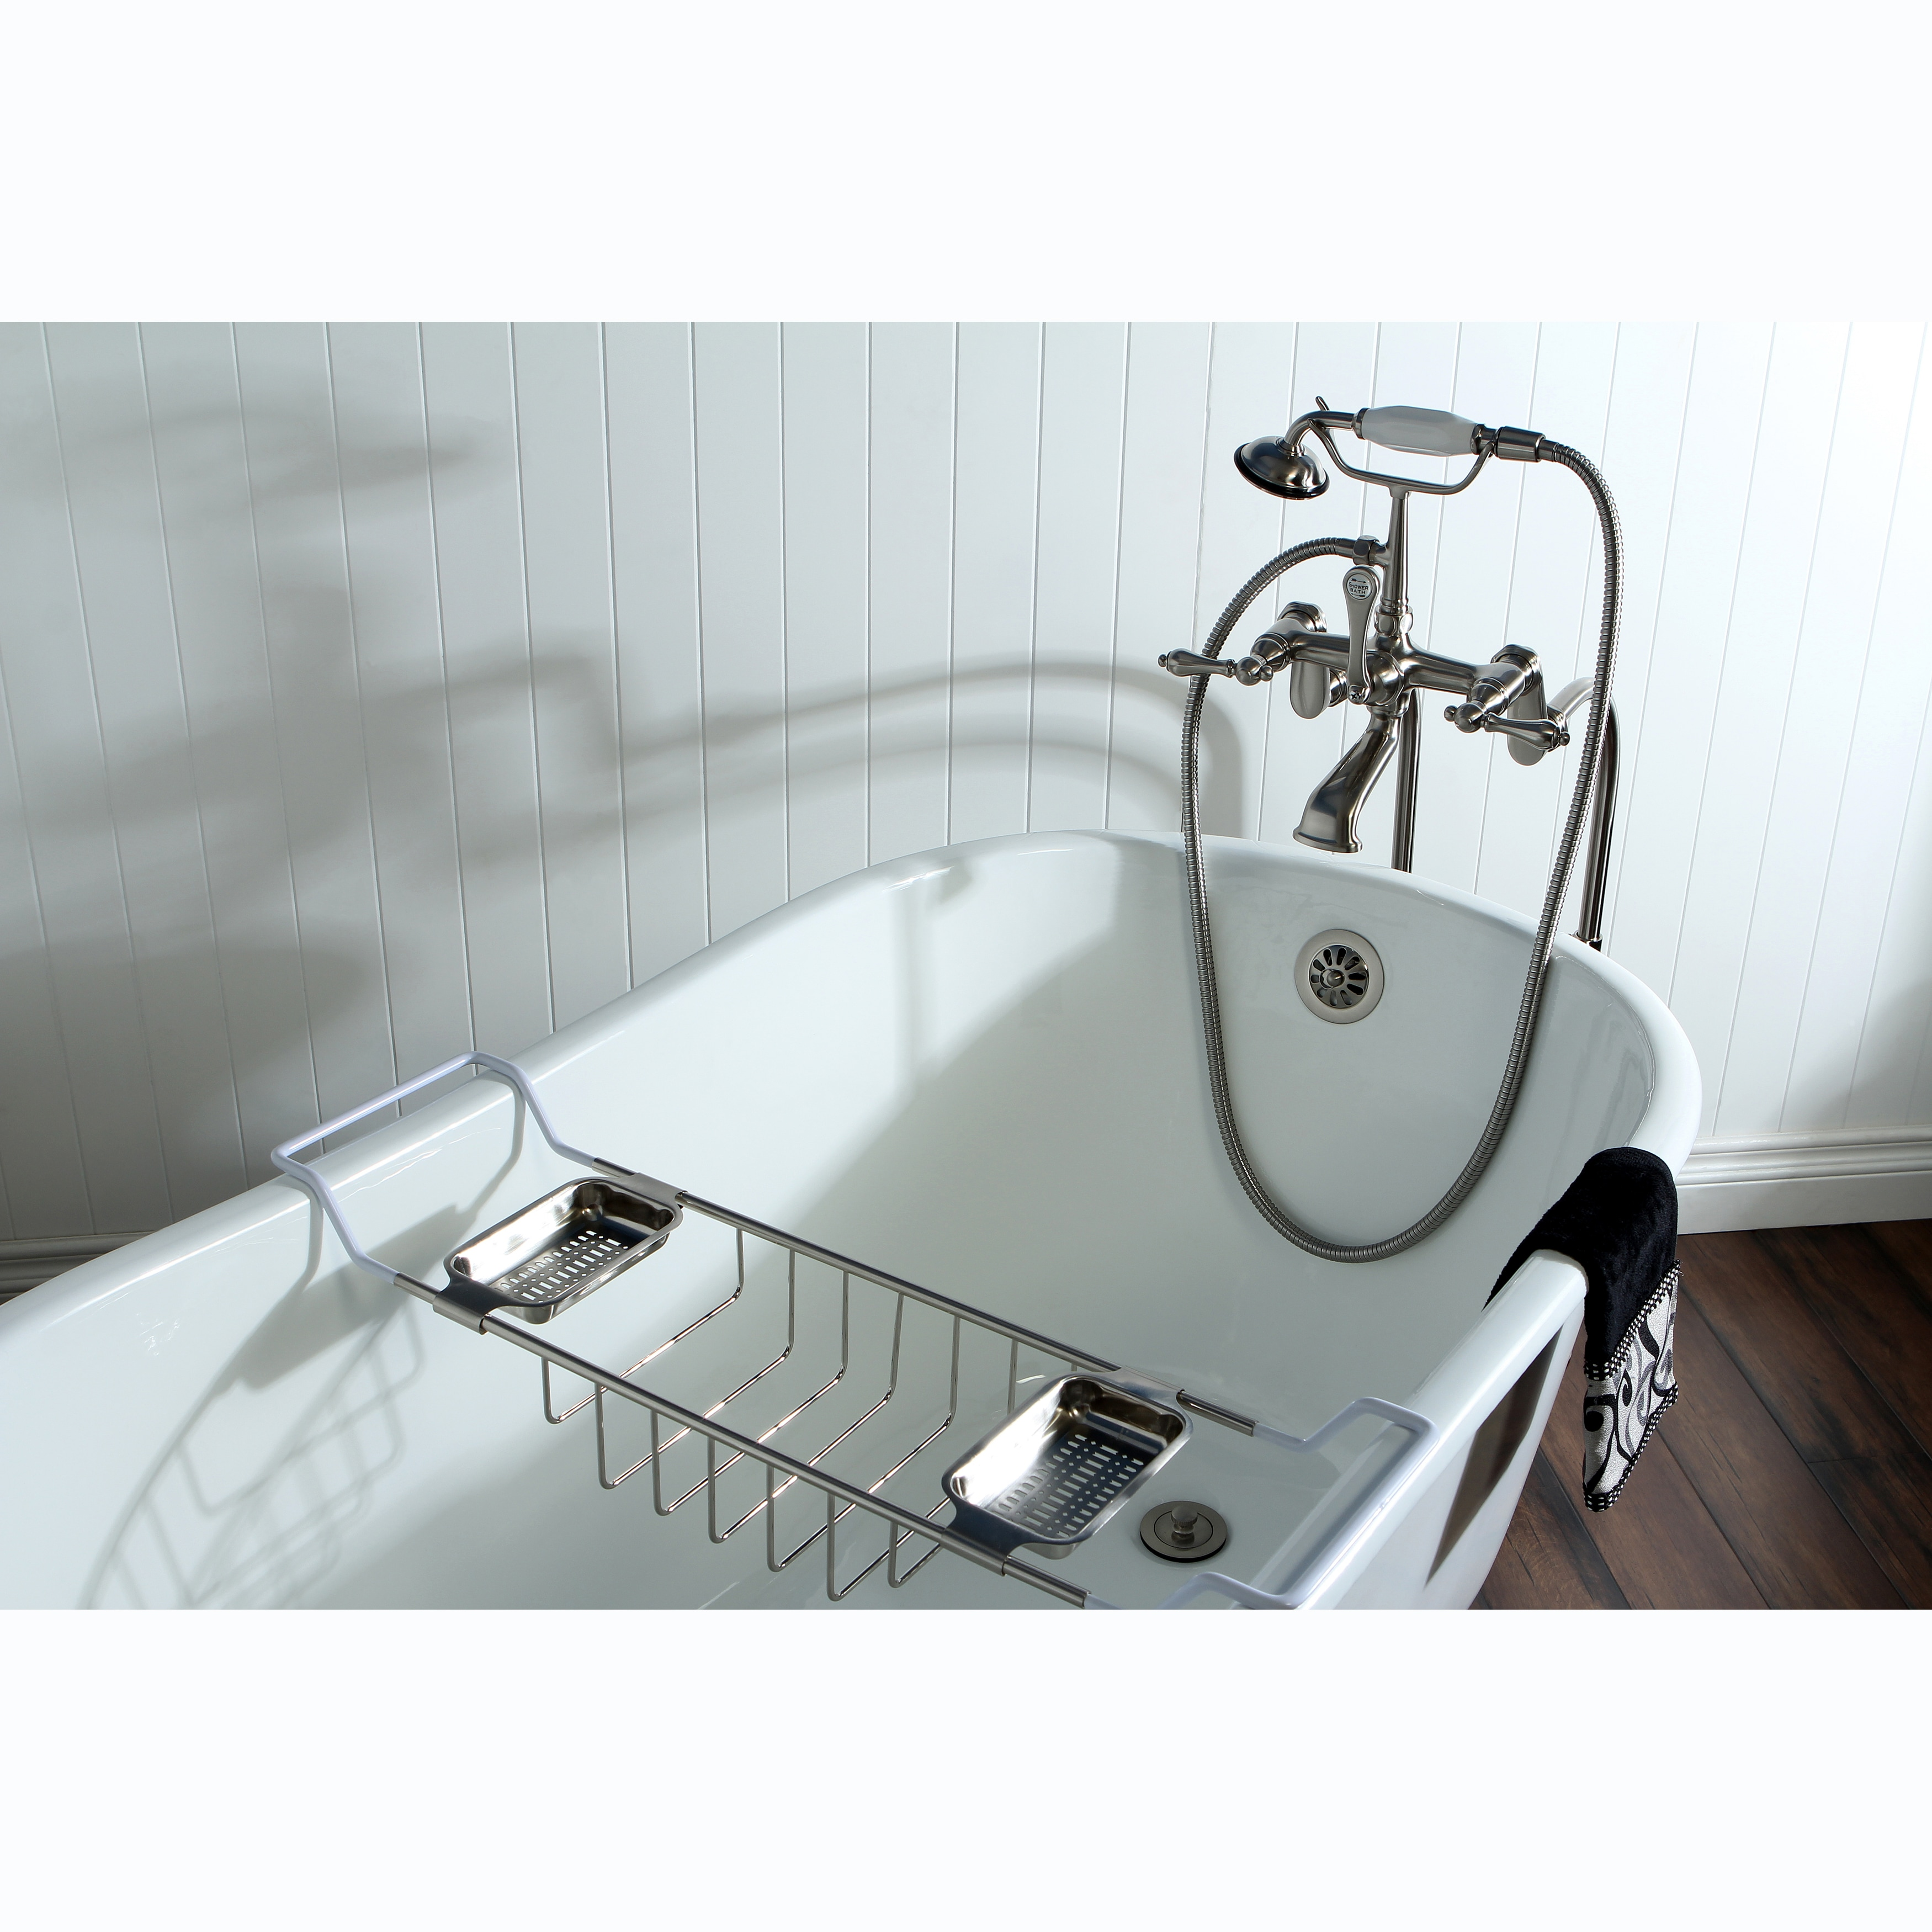 Slipper Cast Iron 53 Inch Clawfoot Bathtub   Free Shipping Today    Overstock.com   15178973